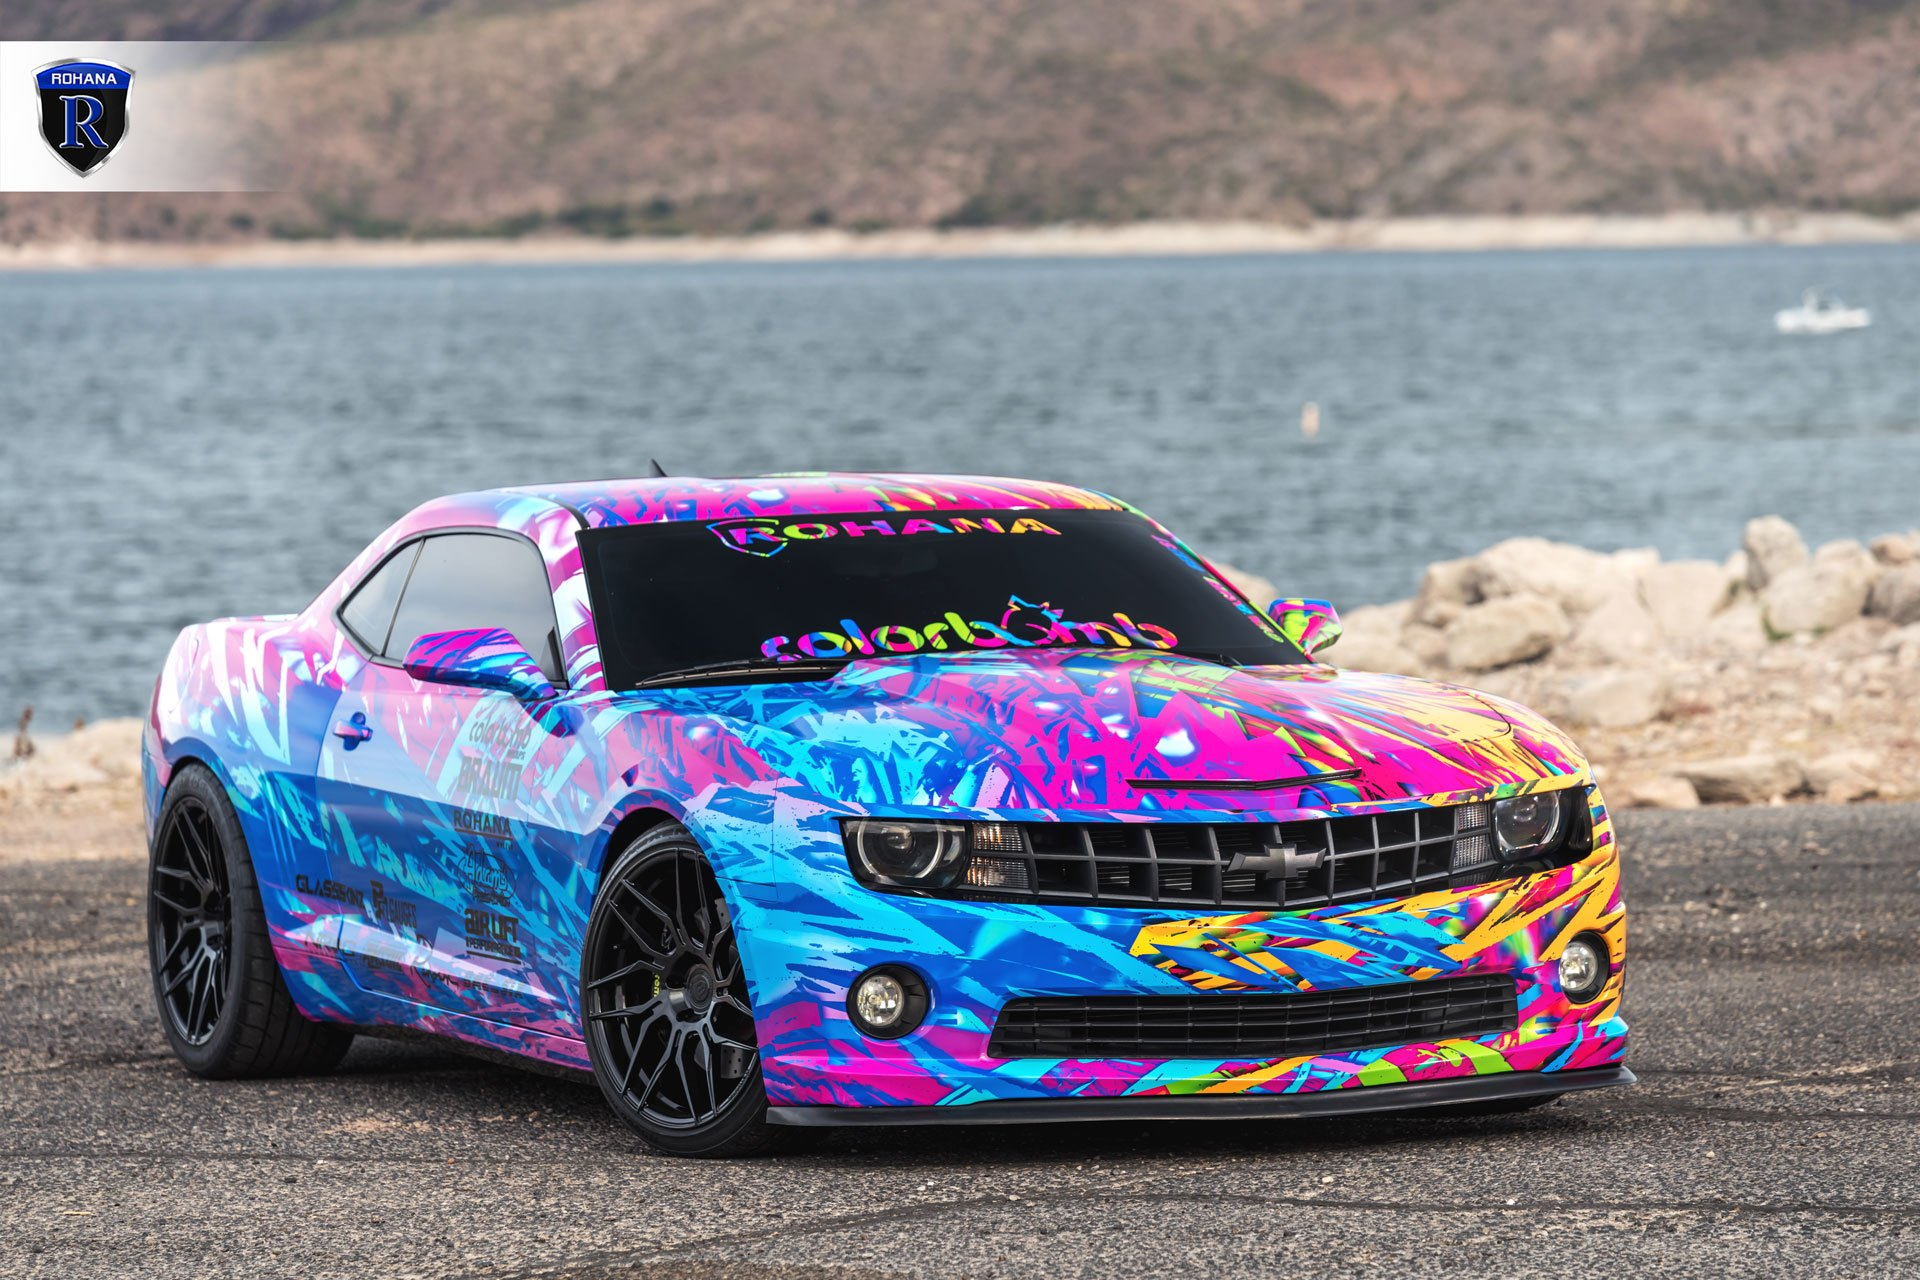 Front Bumper with Fog Lights on Colorful Chevy Camaro - Photo by Rohana Wheels